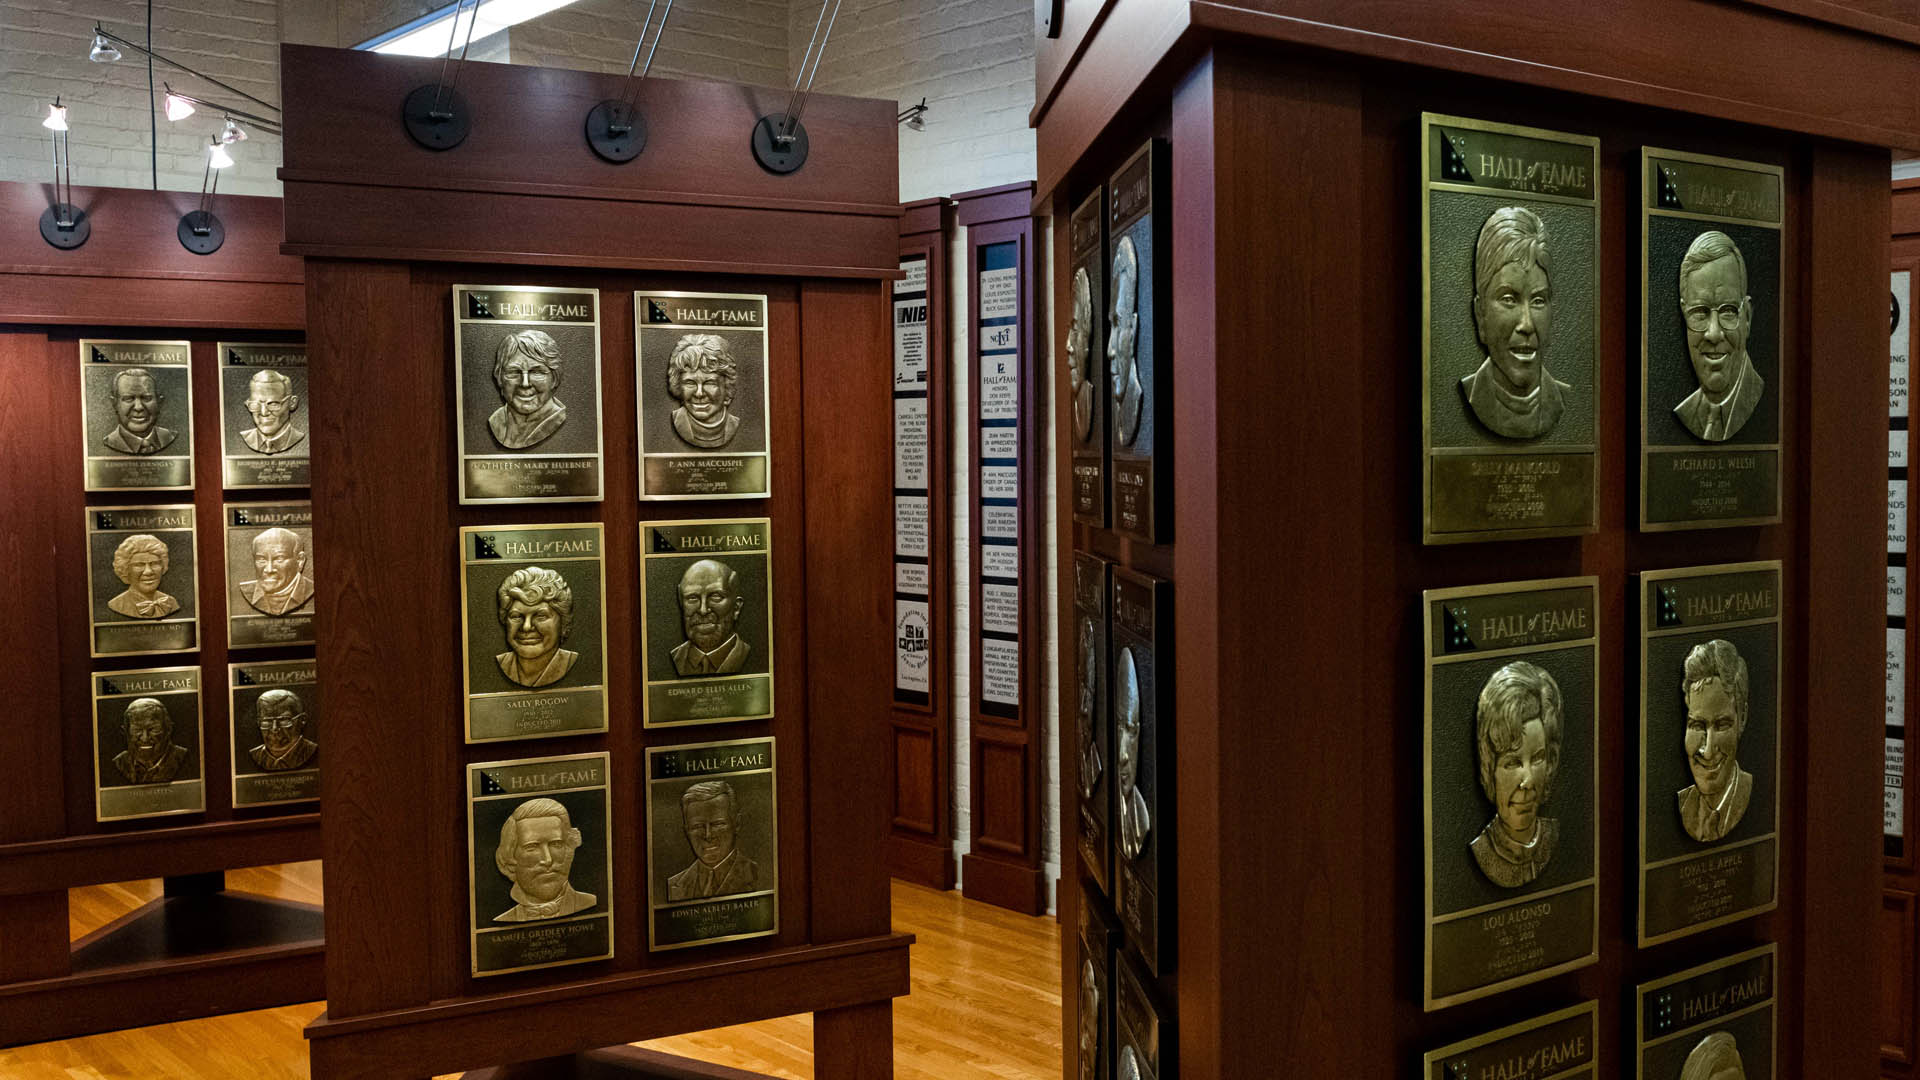 Triangular wooden stands in the Hall of Fame feature gold tone plaques with relief sculptures of people's faces